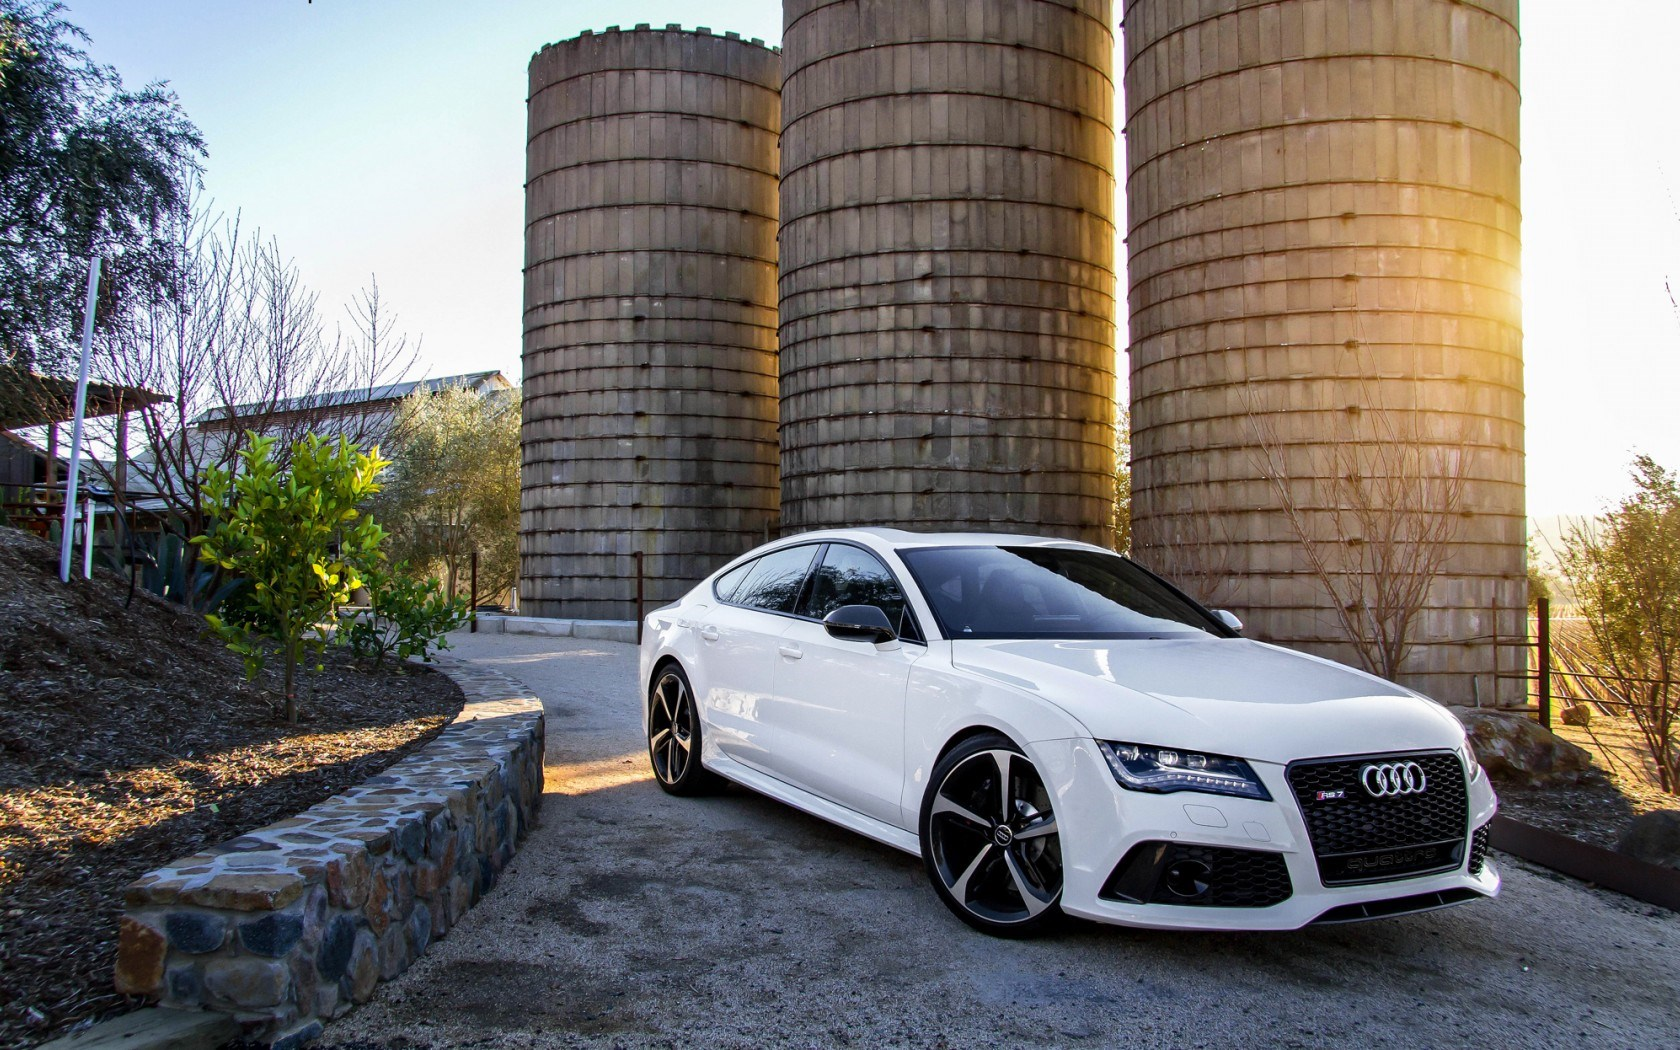 Awesome Audi Rs7 Wallpaper 36961 1680x1050 Px